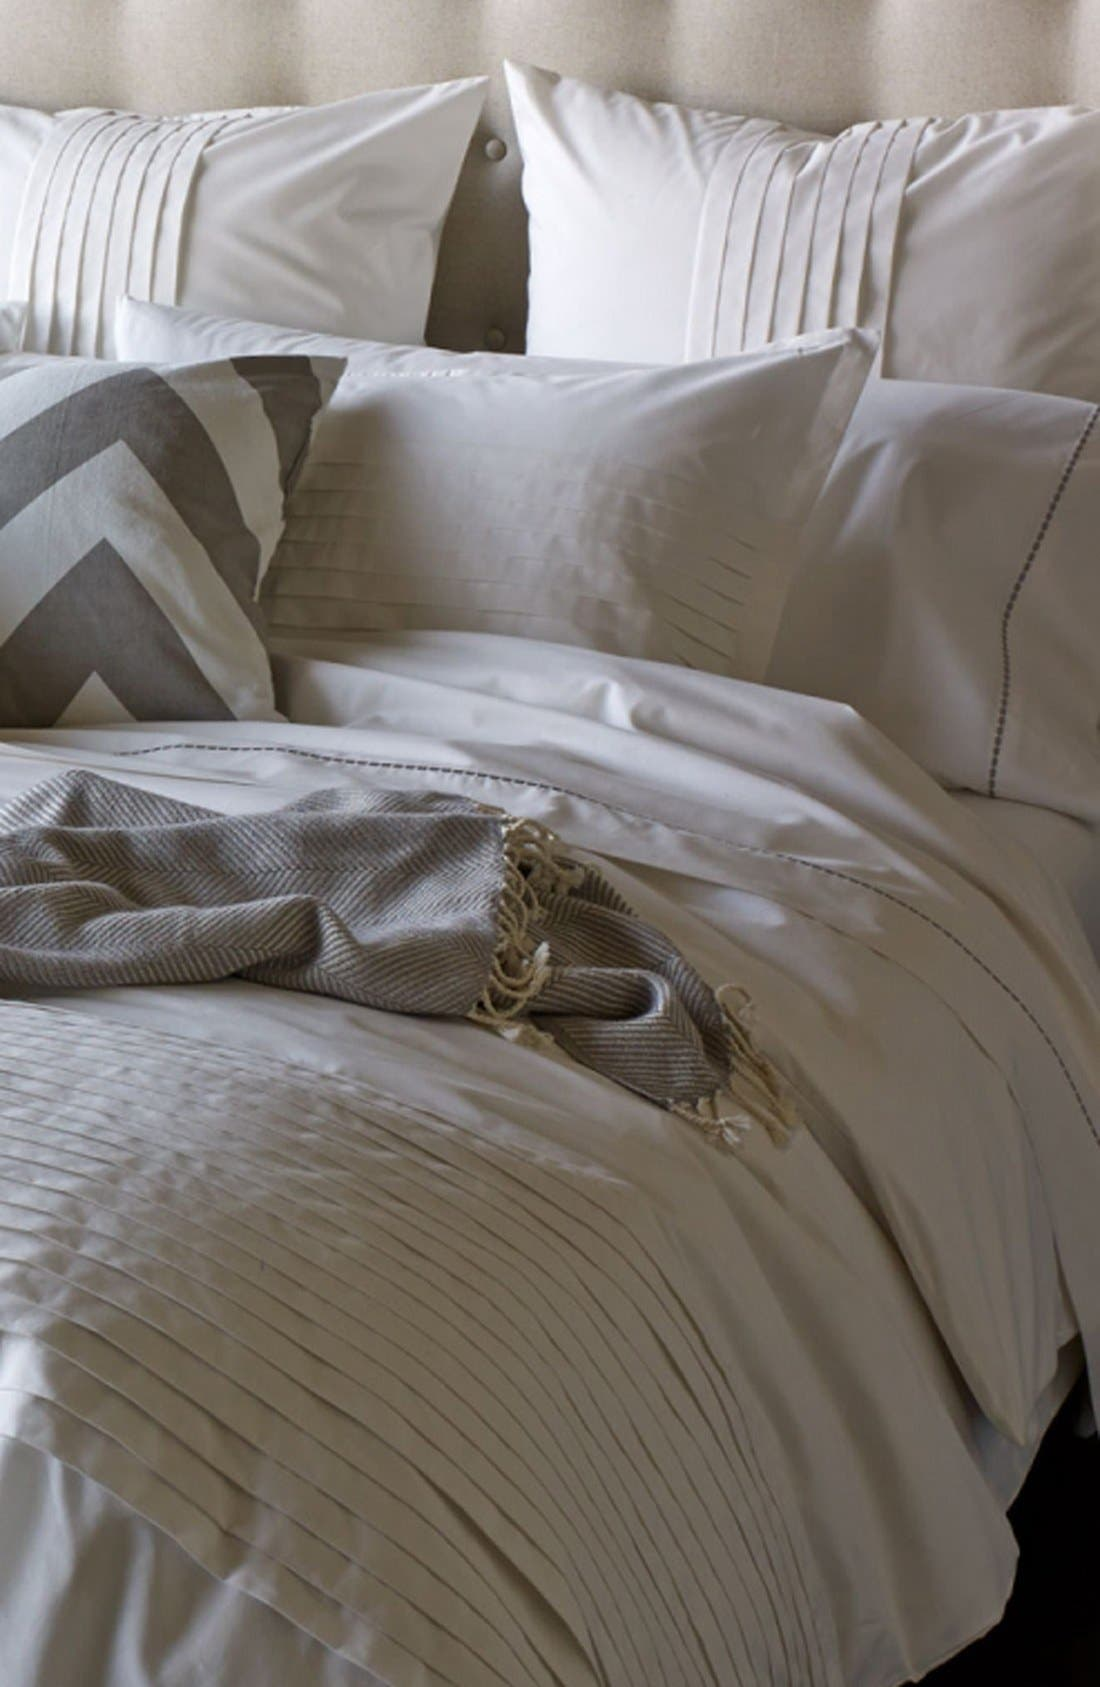 'Block Island' 200 Thread Count Organic Cotton Duvet Cover,                         Main,                         color, White